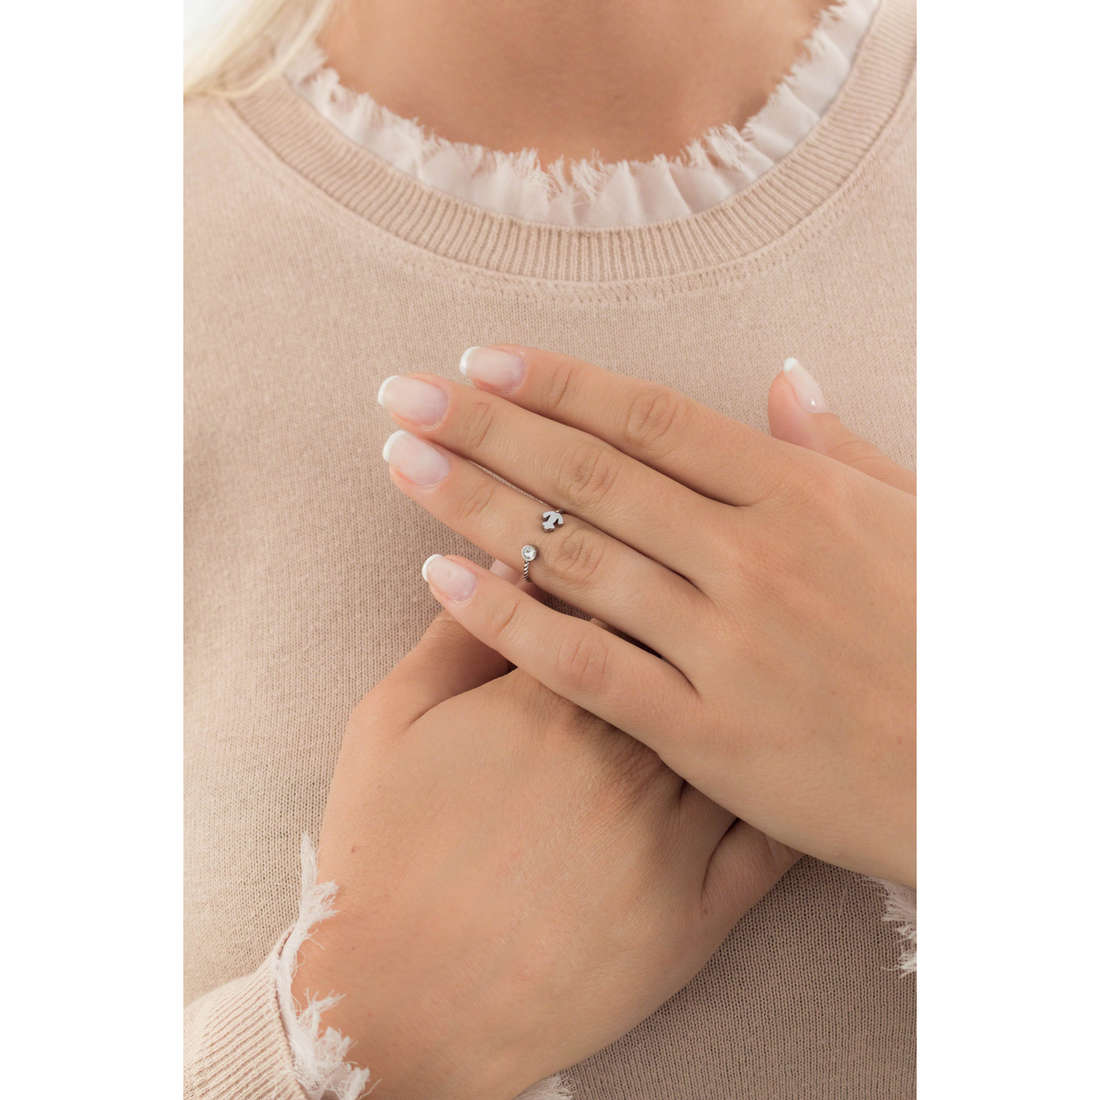 Marlù rings Time To woman 18AN036-F indosso